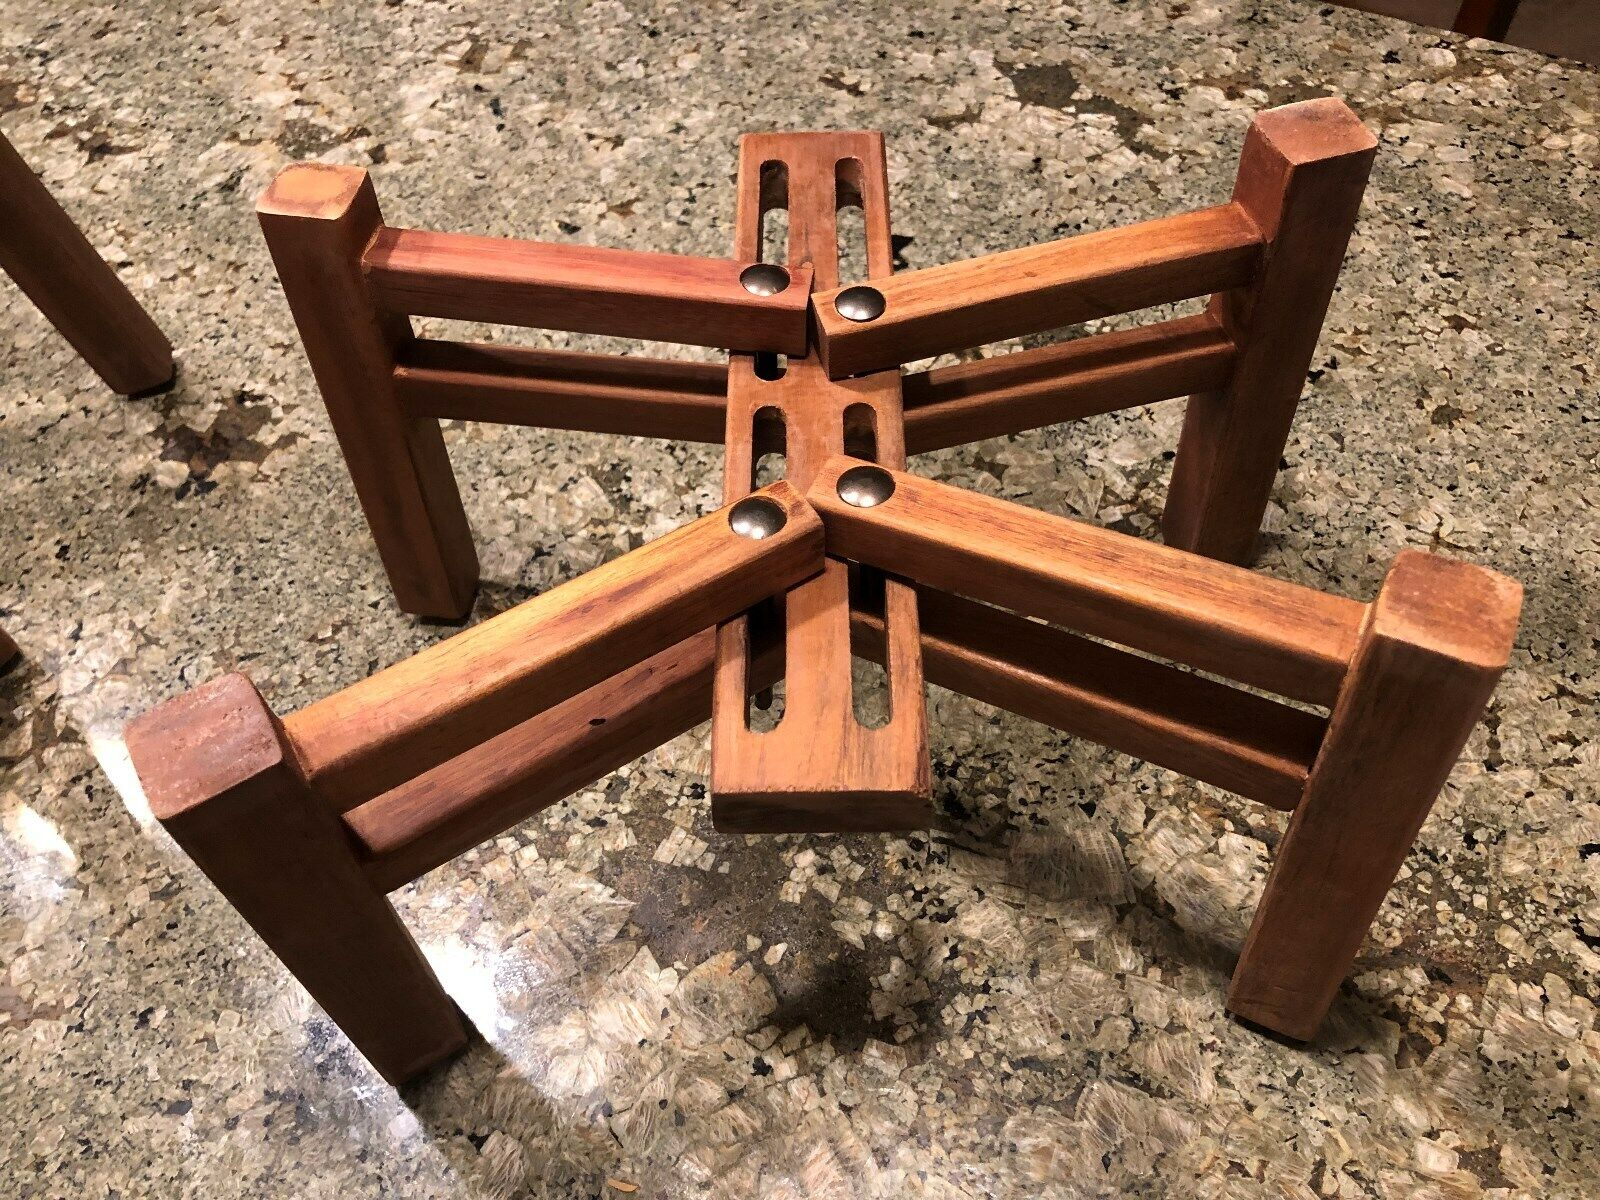 s l1600 - Solid Wood Speaker Stands for Sansui, JBL, Pioneer, Marantz, AR3a and Others